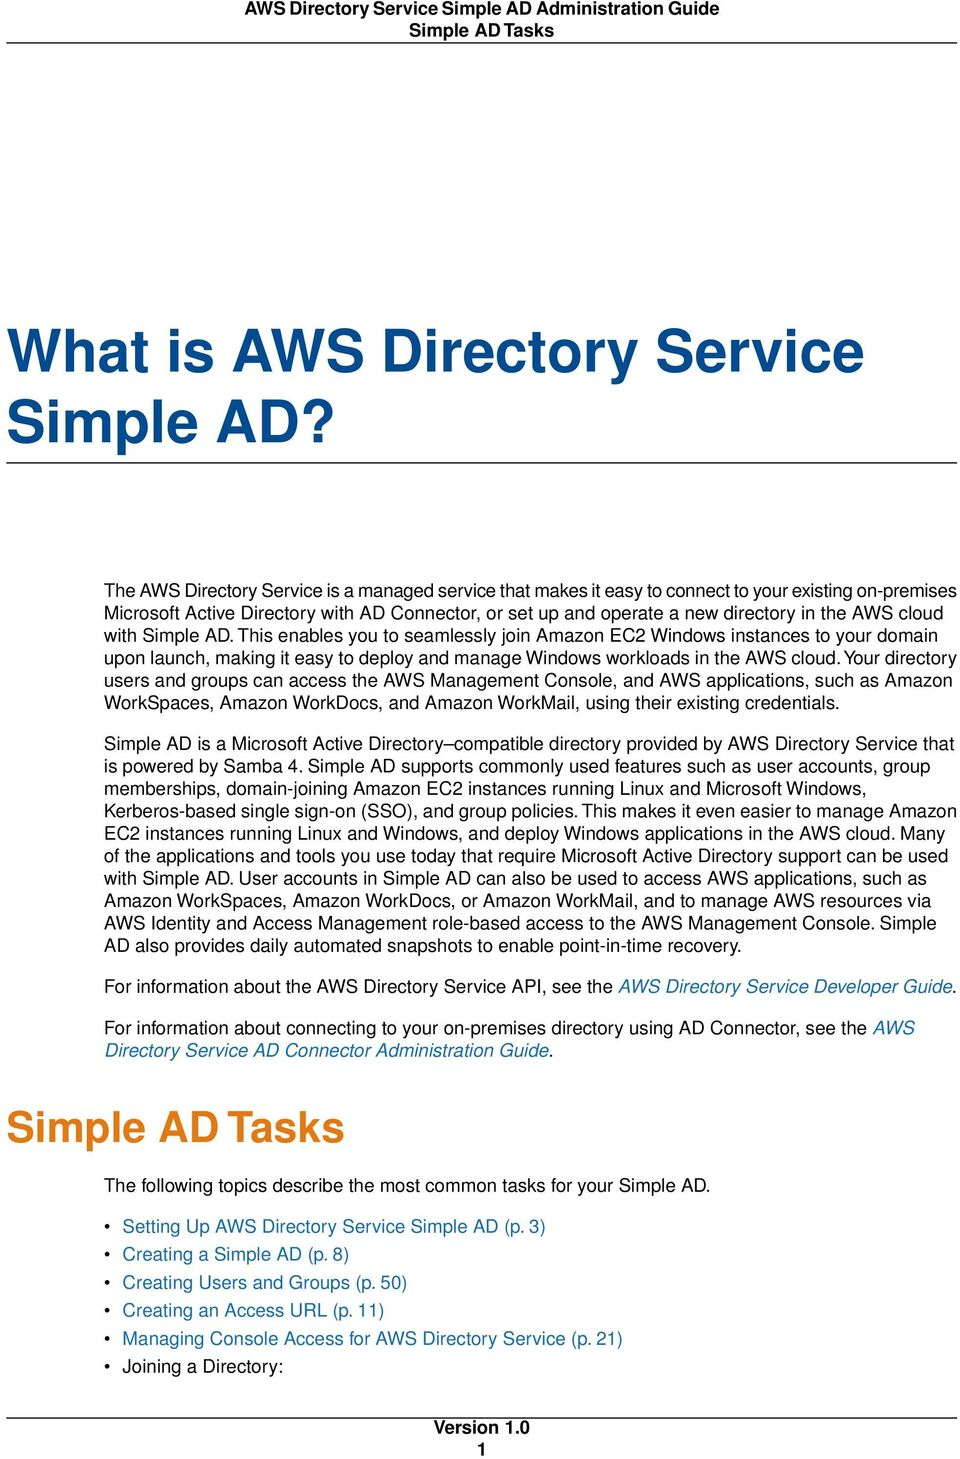 AWS cloud with Simple AD. This enables you to seamlessly join Amazon EC2 Windows instances to your domain upon launch, making it easy to deploy and manage Windows workloads in the AWS cloud.